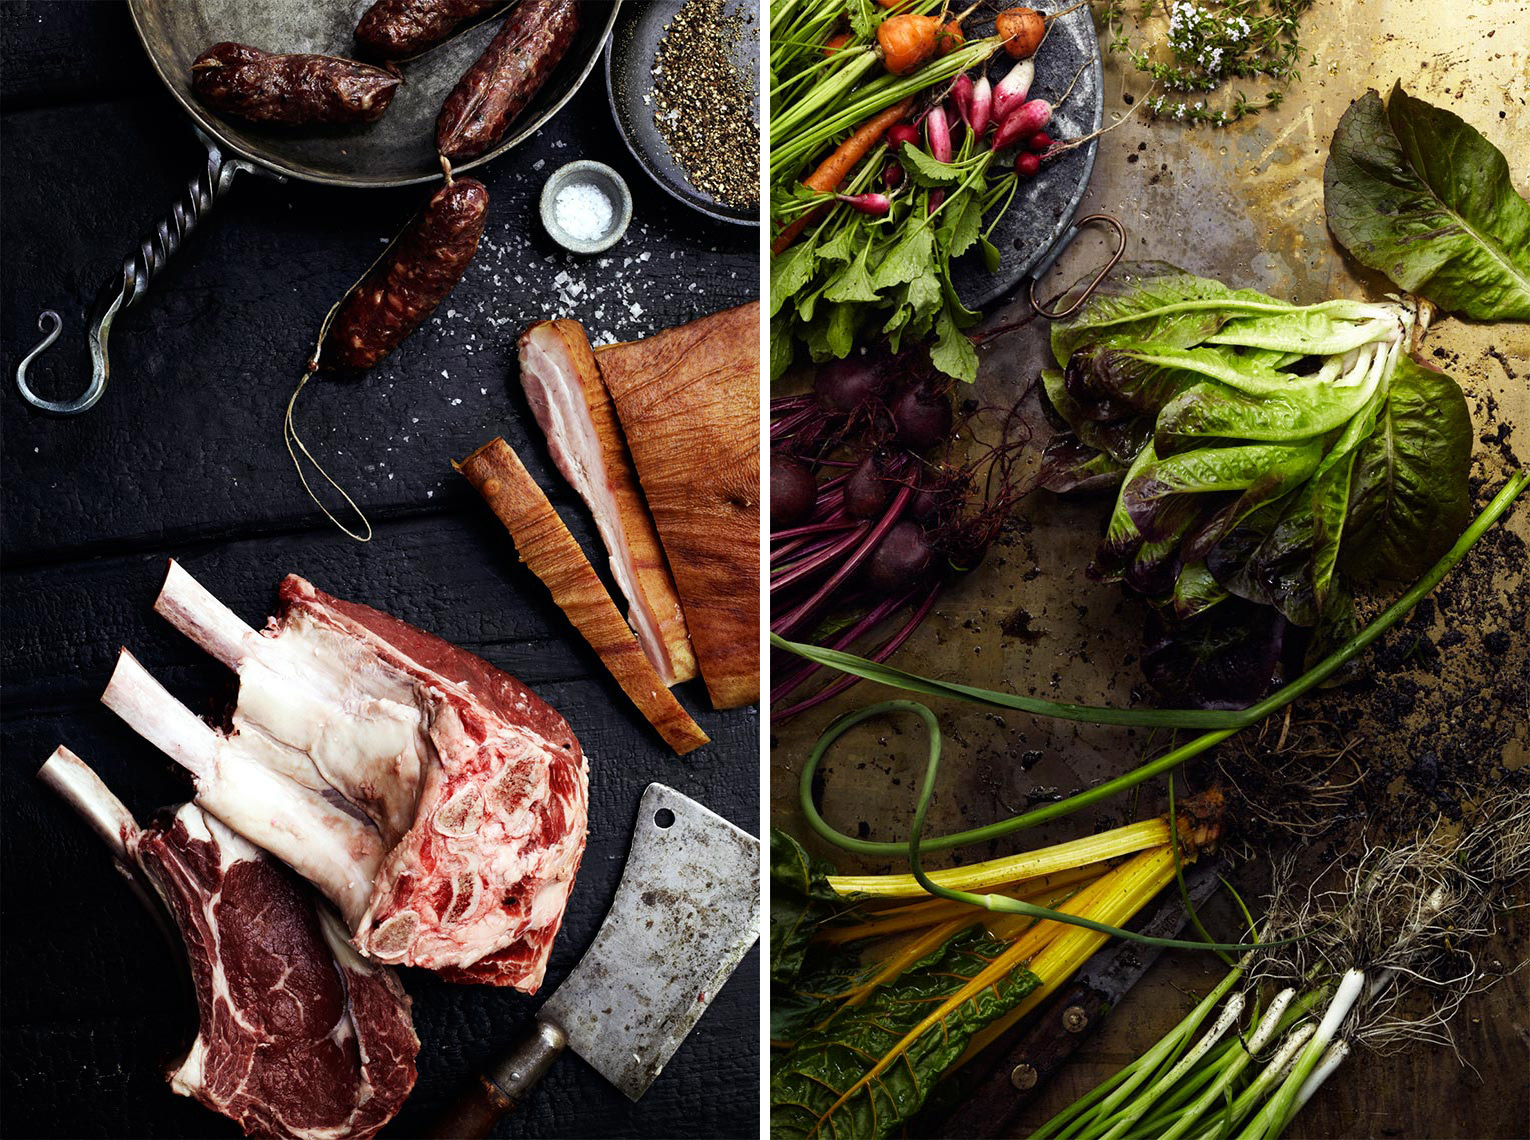 Glasshouse Assignment - Bob Martus - Food Photography - Meat and Veggies